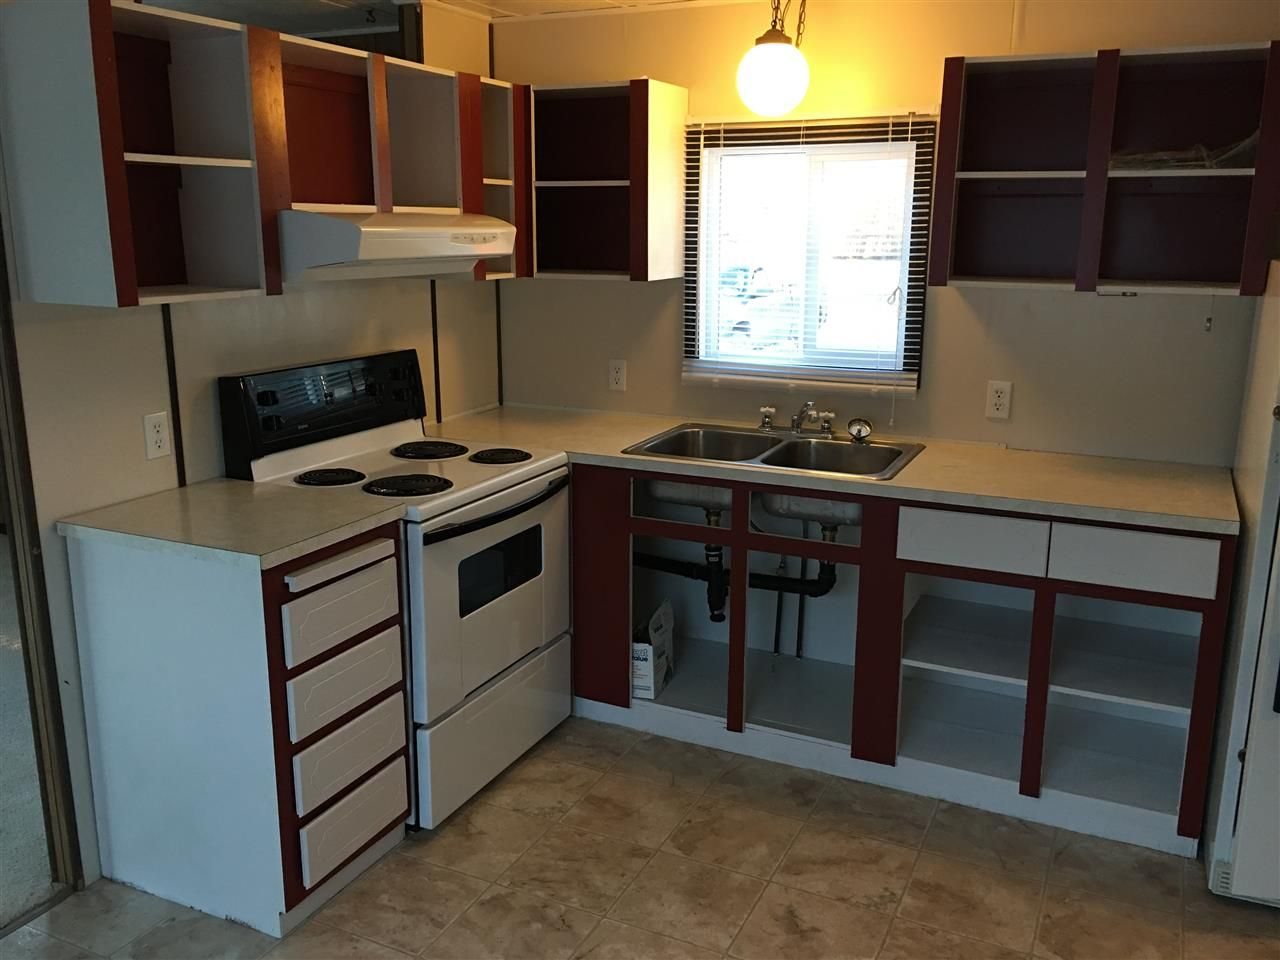 Photo 3: Photos: 10049 100A Street: Taylor Manufactured Home for sale (Fort St. John (Zone 60))  : MLS®# R2563225